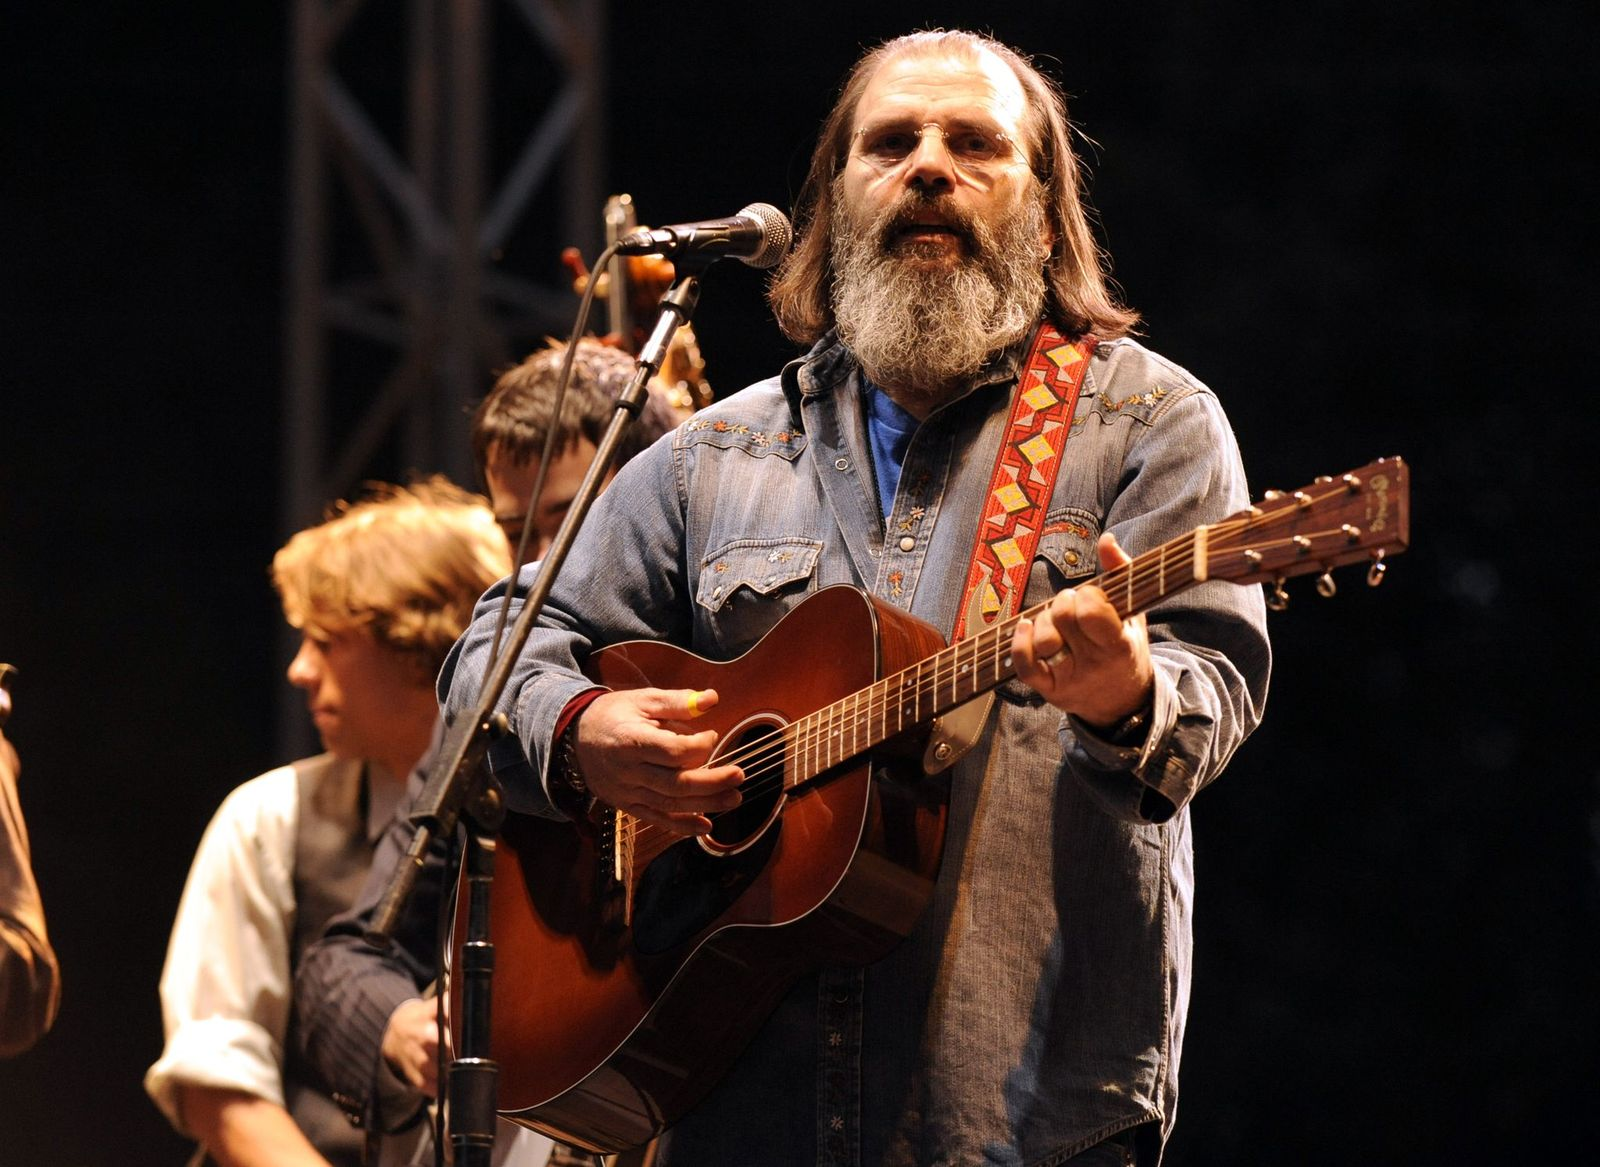 Steve Earle performs with T Bone Burnett and Friends as part of Hardly Strictly Bluegrass 10 on October 1, 2010, in San Francisco, California | Photo: Tim Mosenfelder/Getty Images